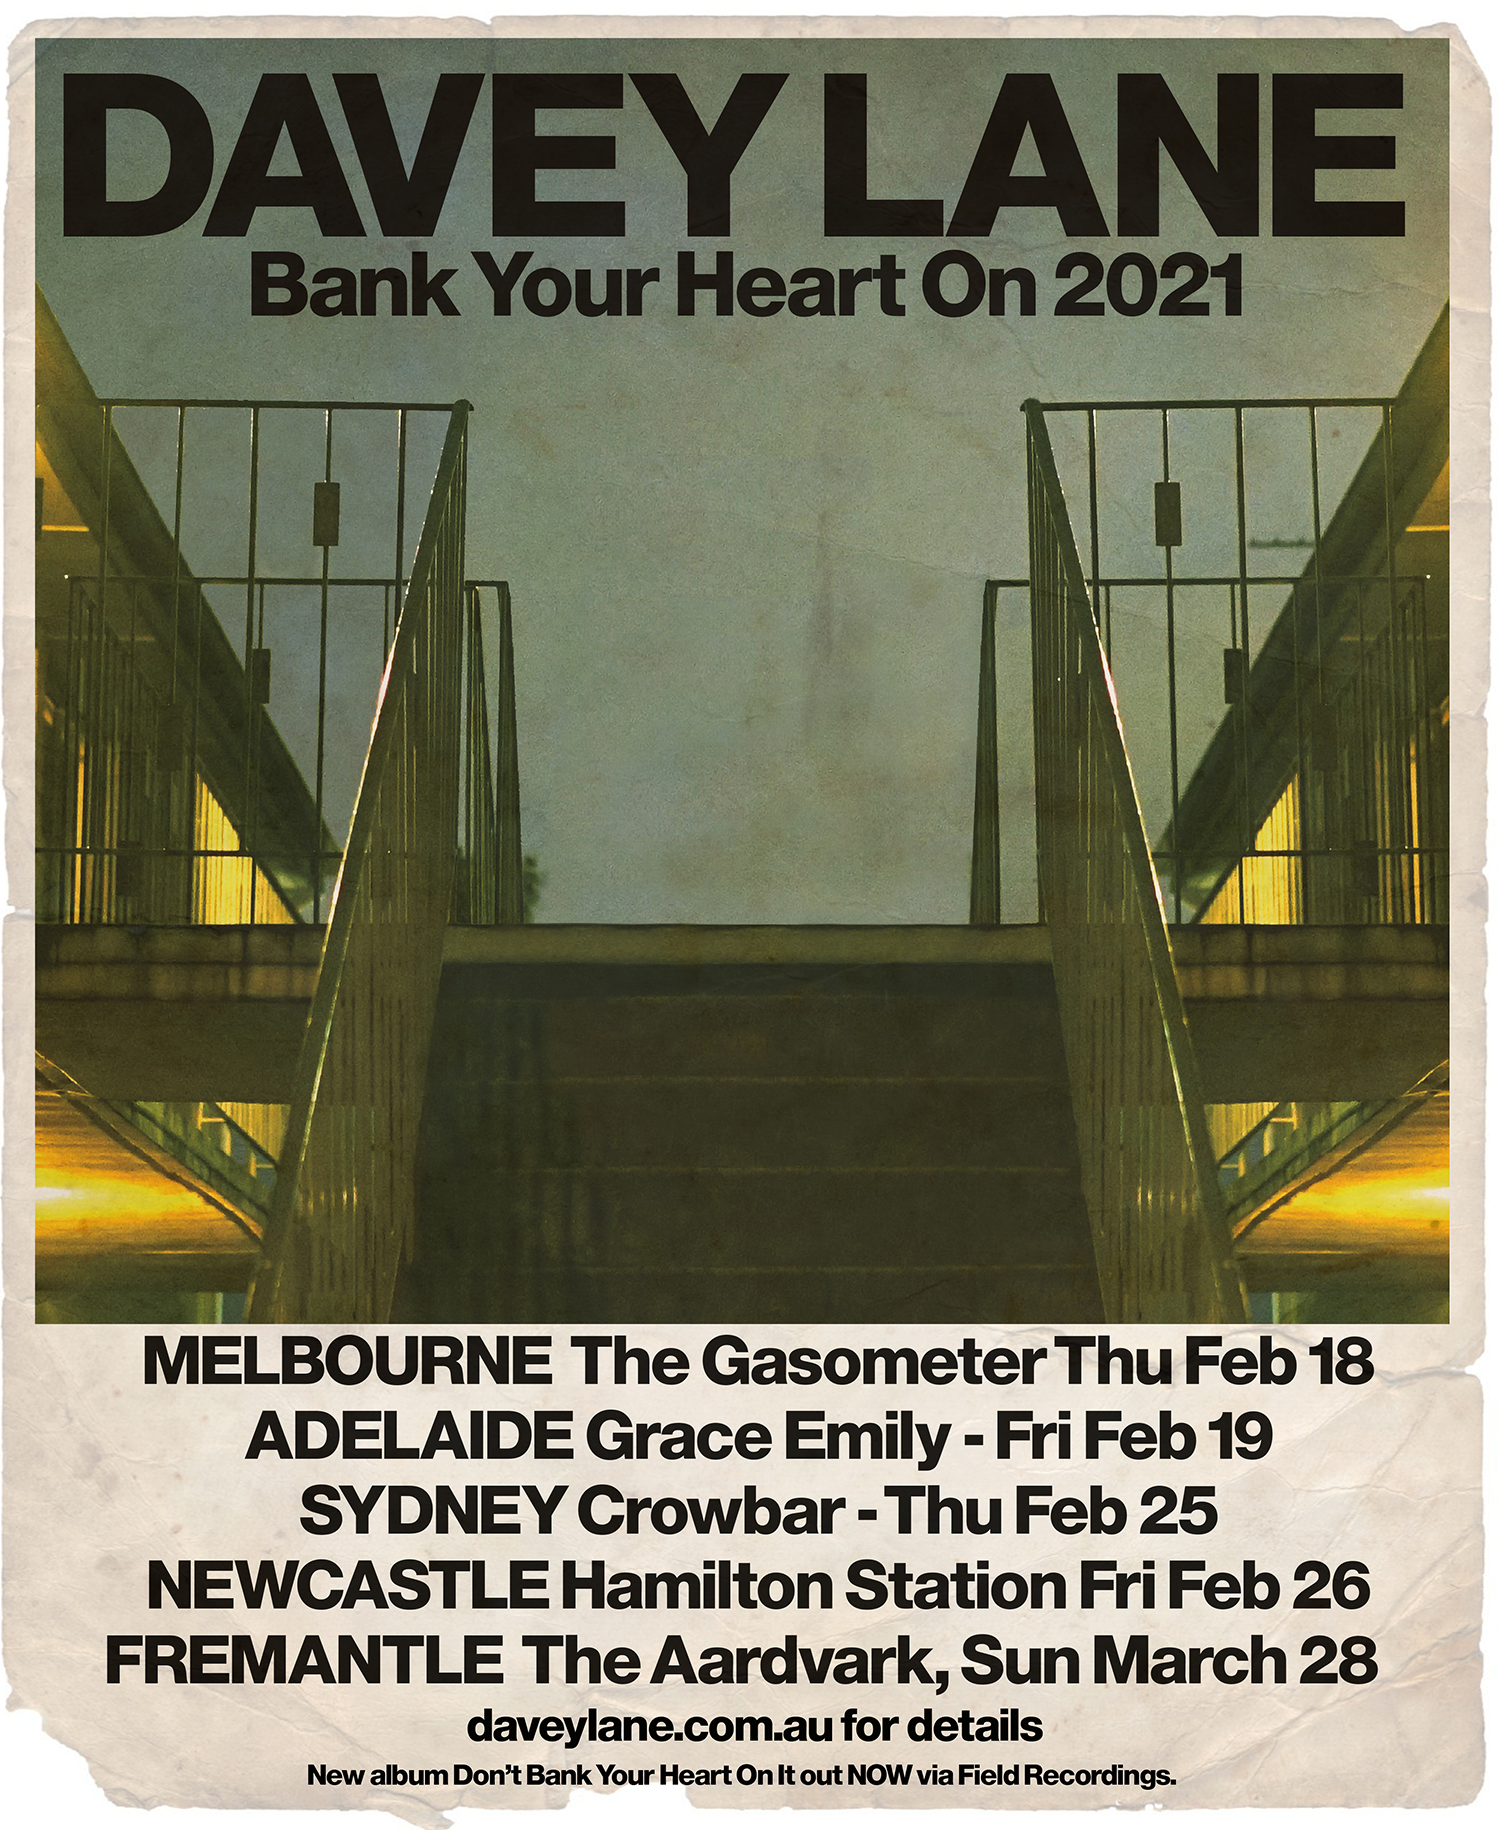 Gig poster for upcoming live shows in Melbourne, Adelaide, Sydney, Newcastle and Fremantle